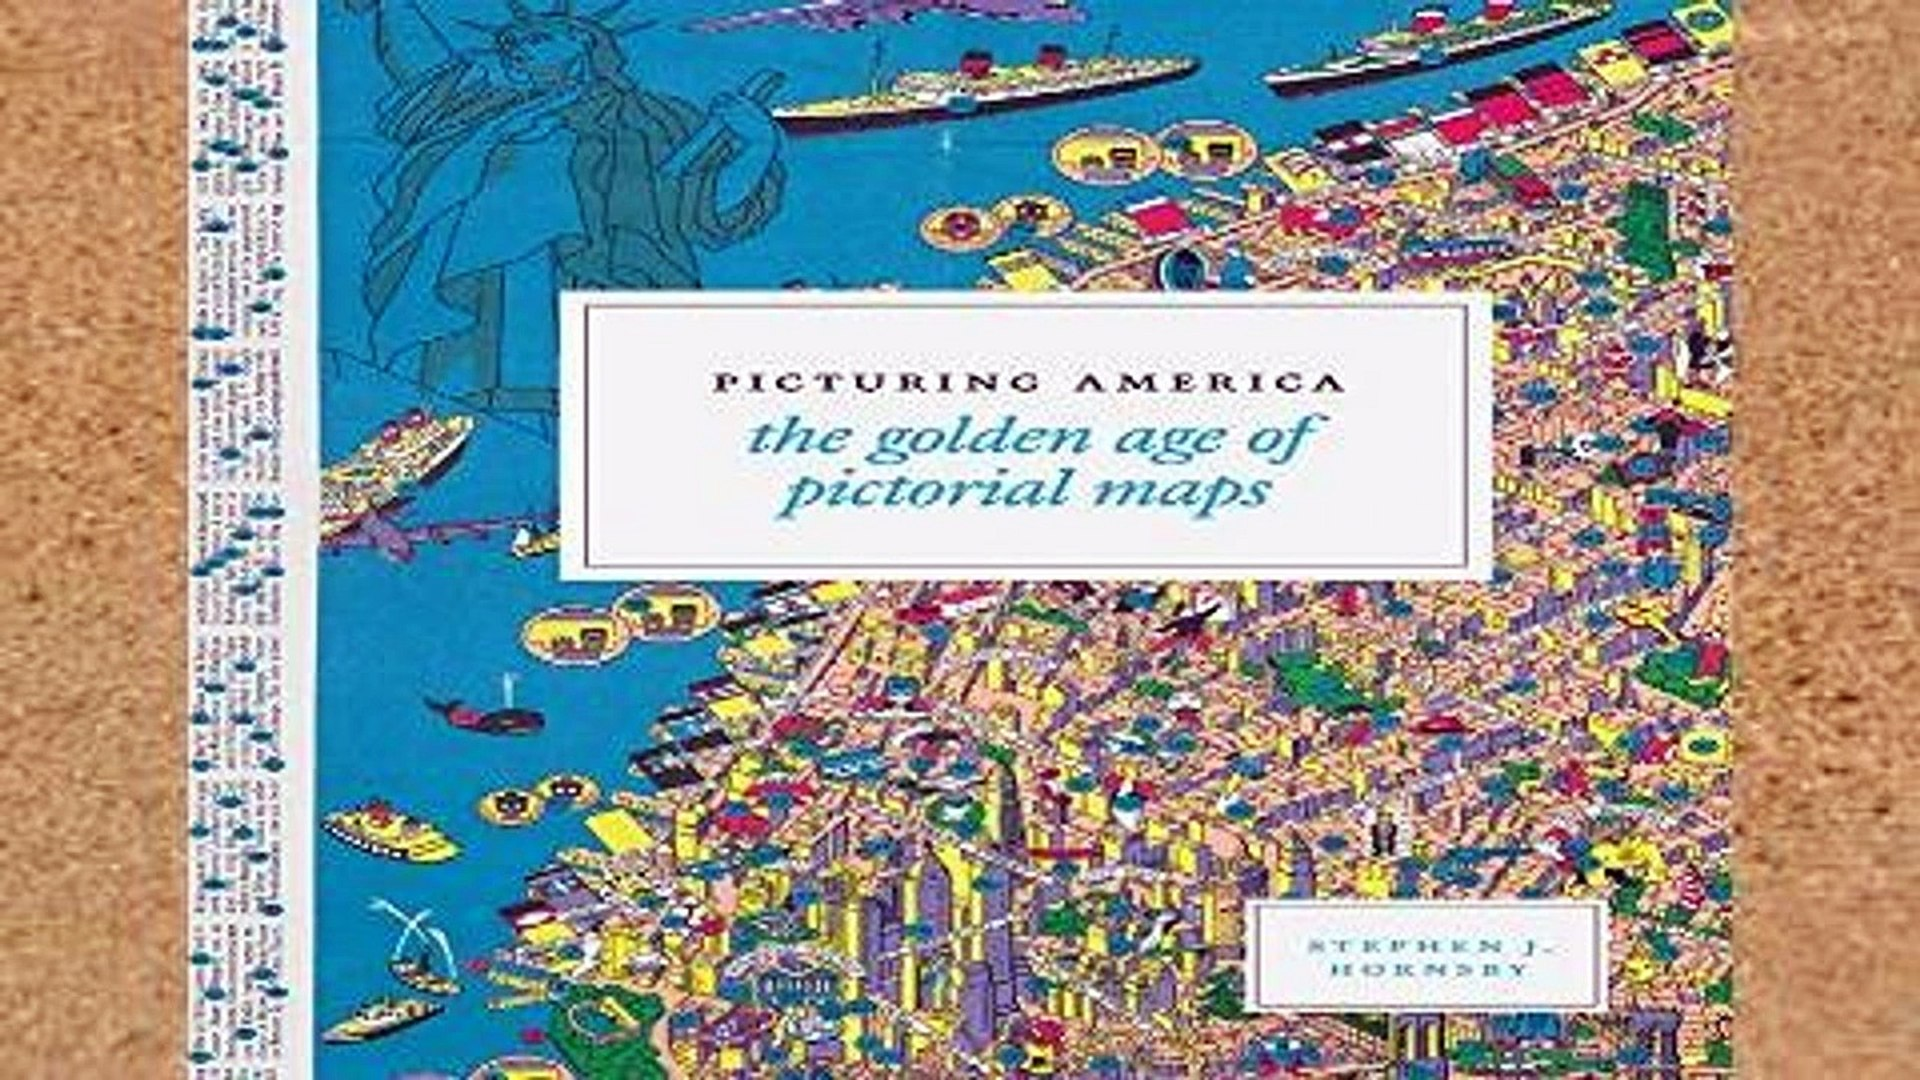 The Golden Age of Pictorial Maps Picturing America